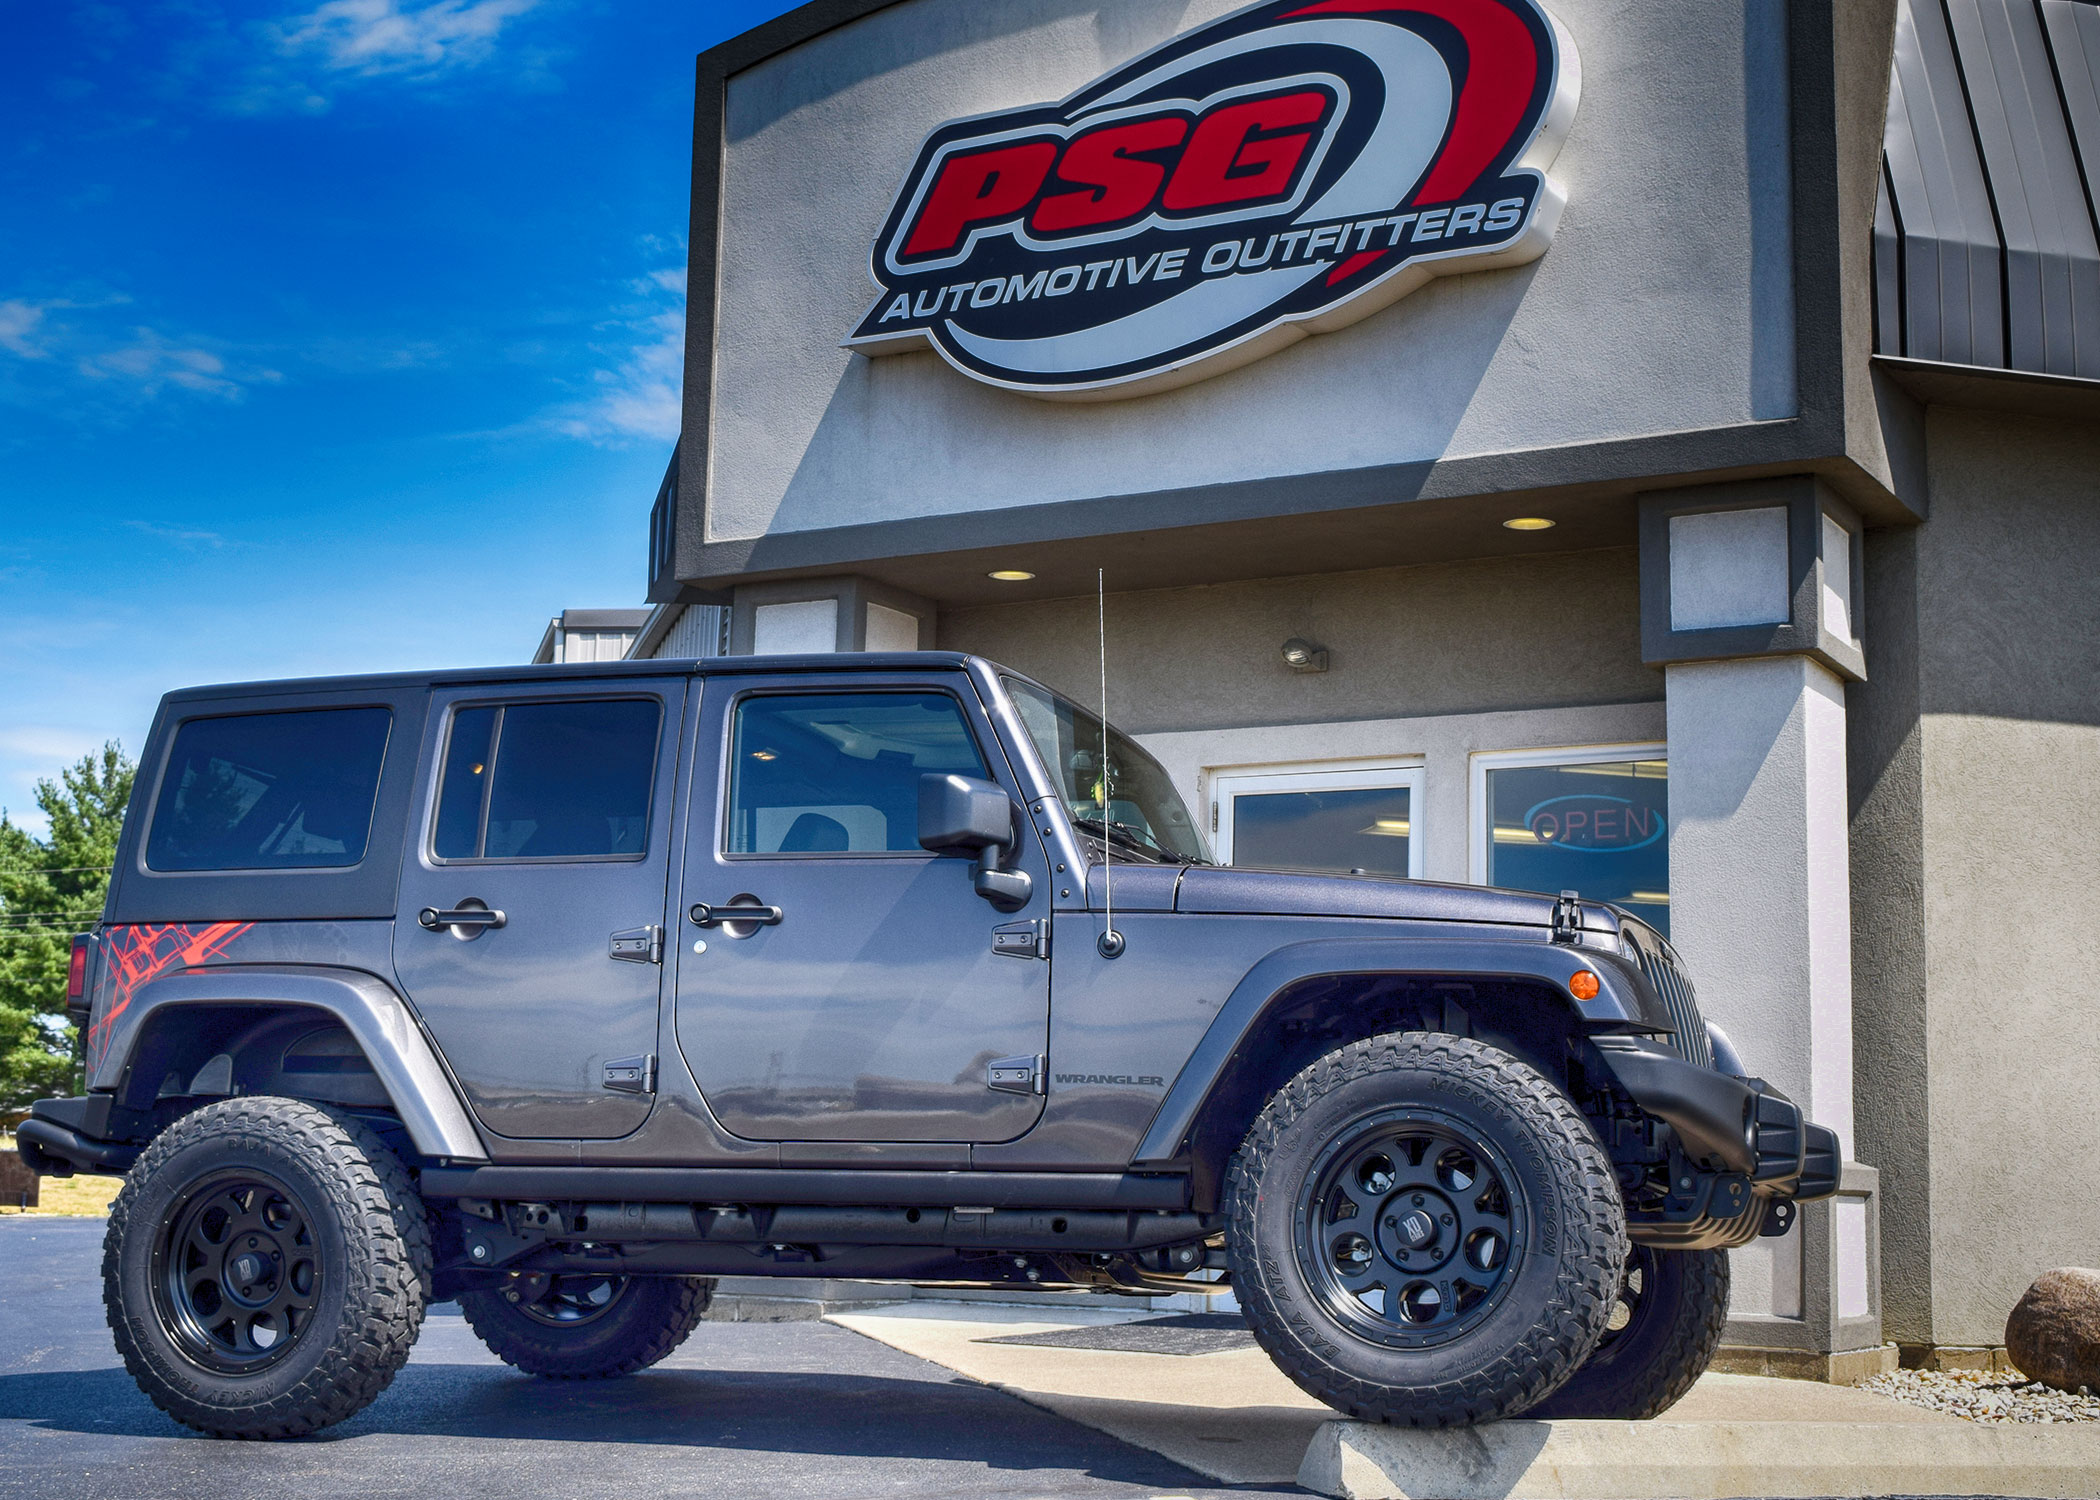 Jeep Zone PSG Automotive Sidney Ohio Lift Tires Wheels